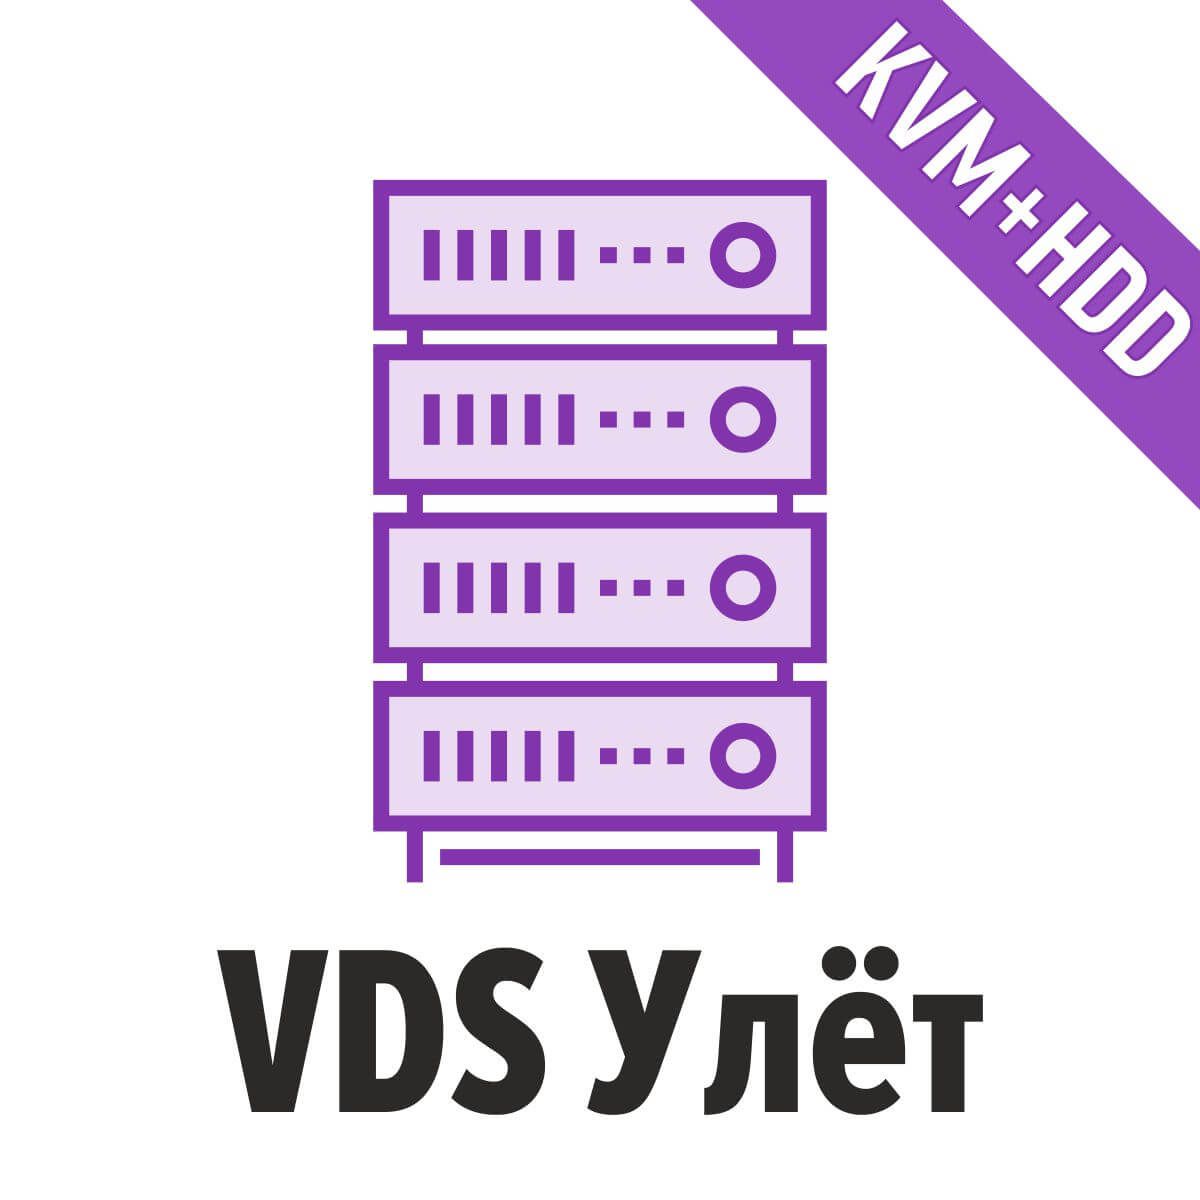 VDS Улёт (KVM, HDD+SSD, 6 Core, 6Gb RAM, 120Gb HDD)